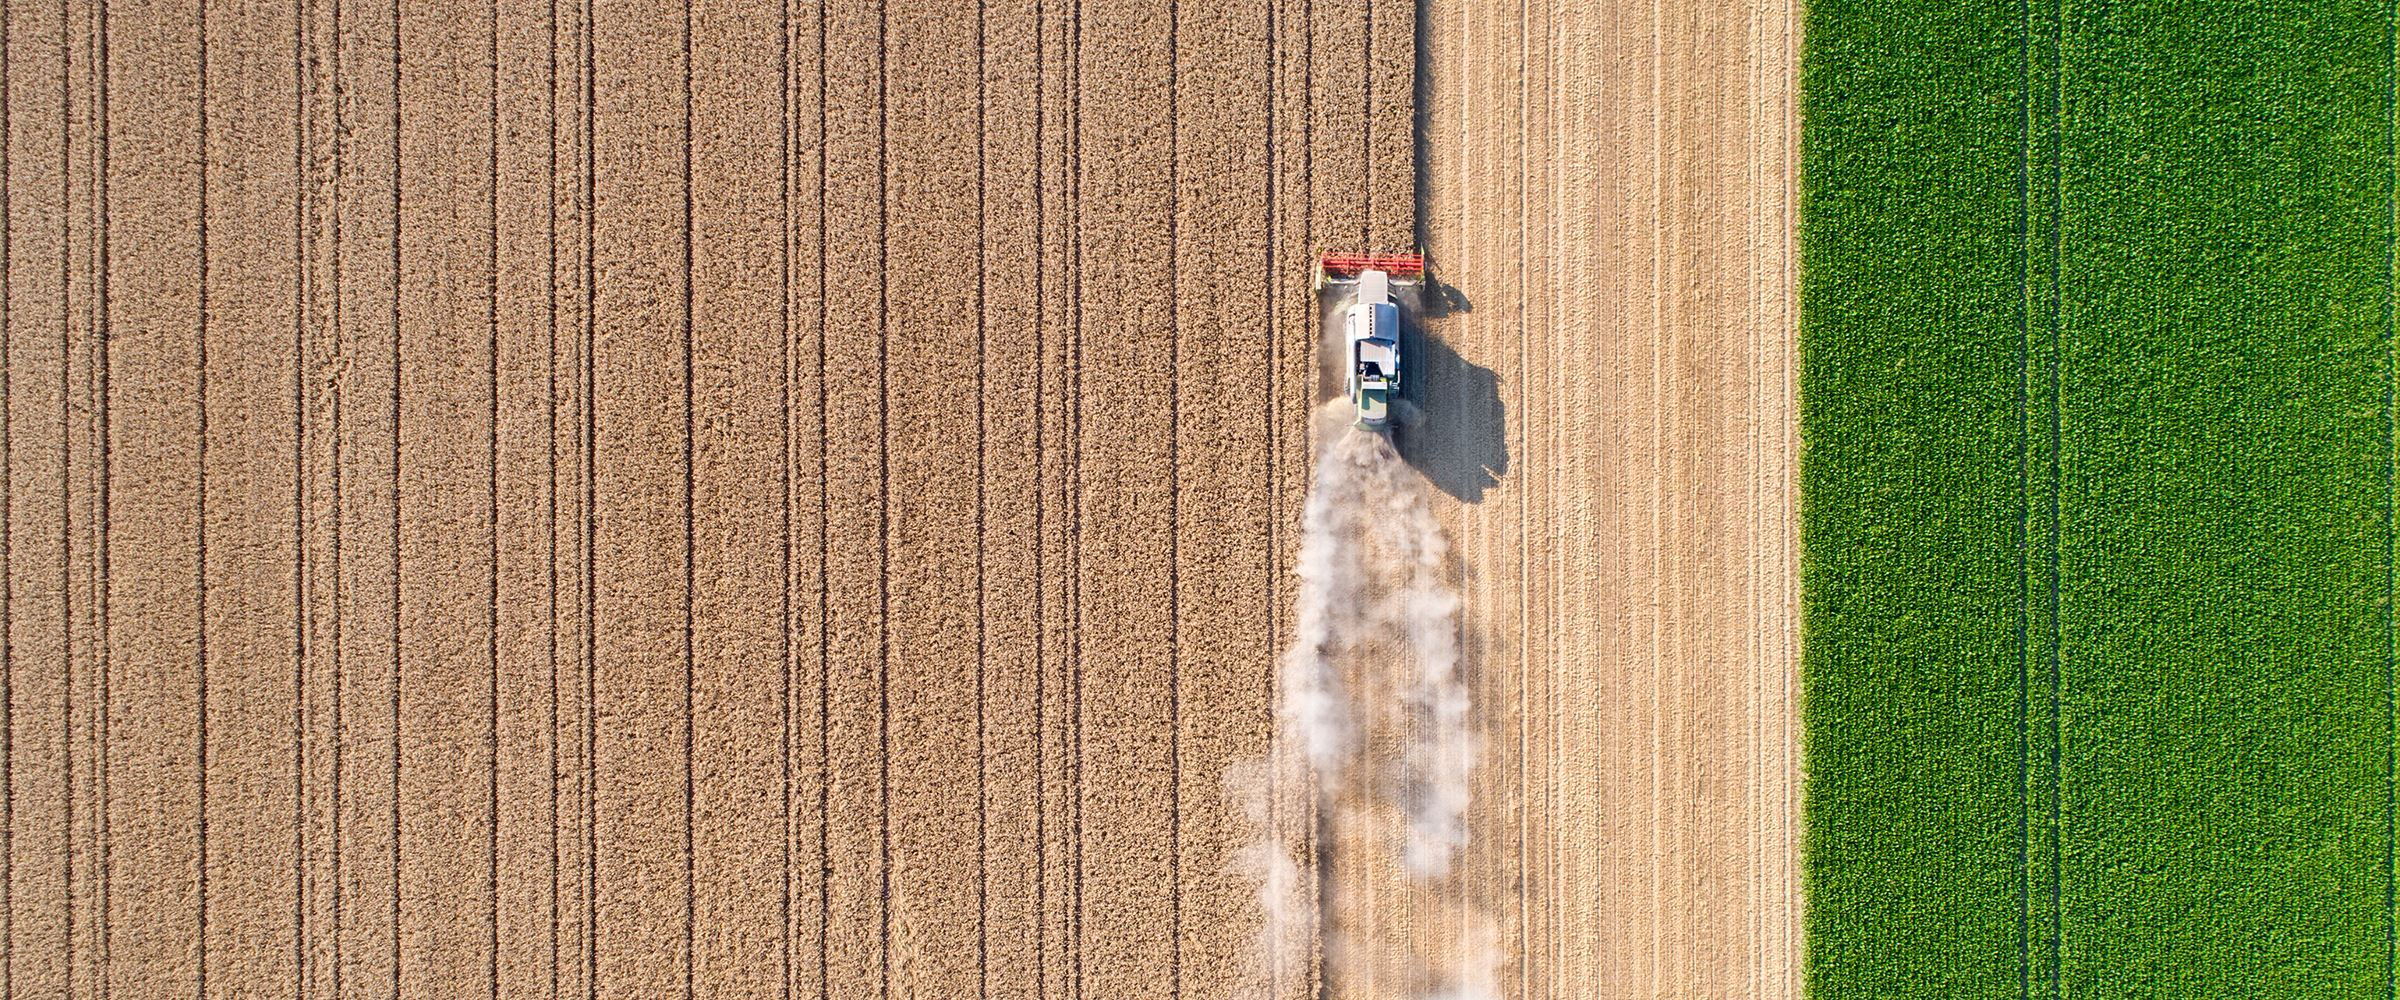 A combine harvester working through a field